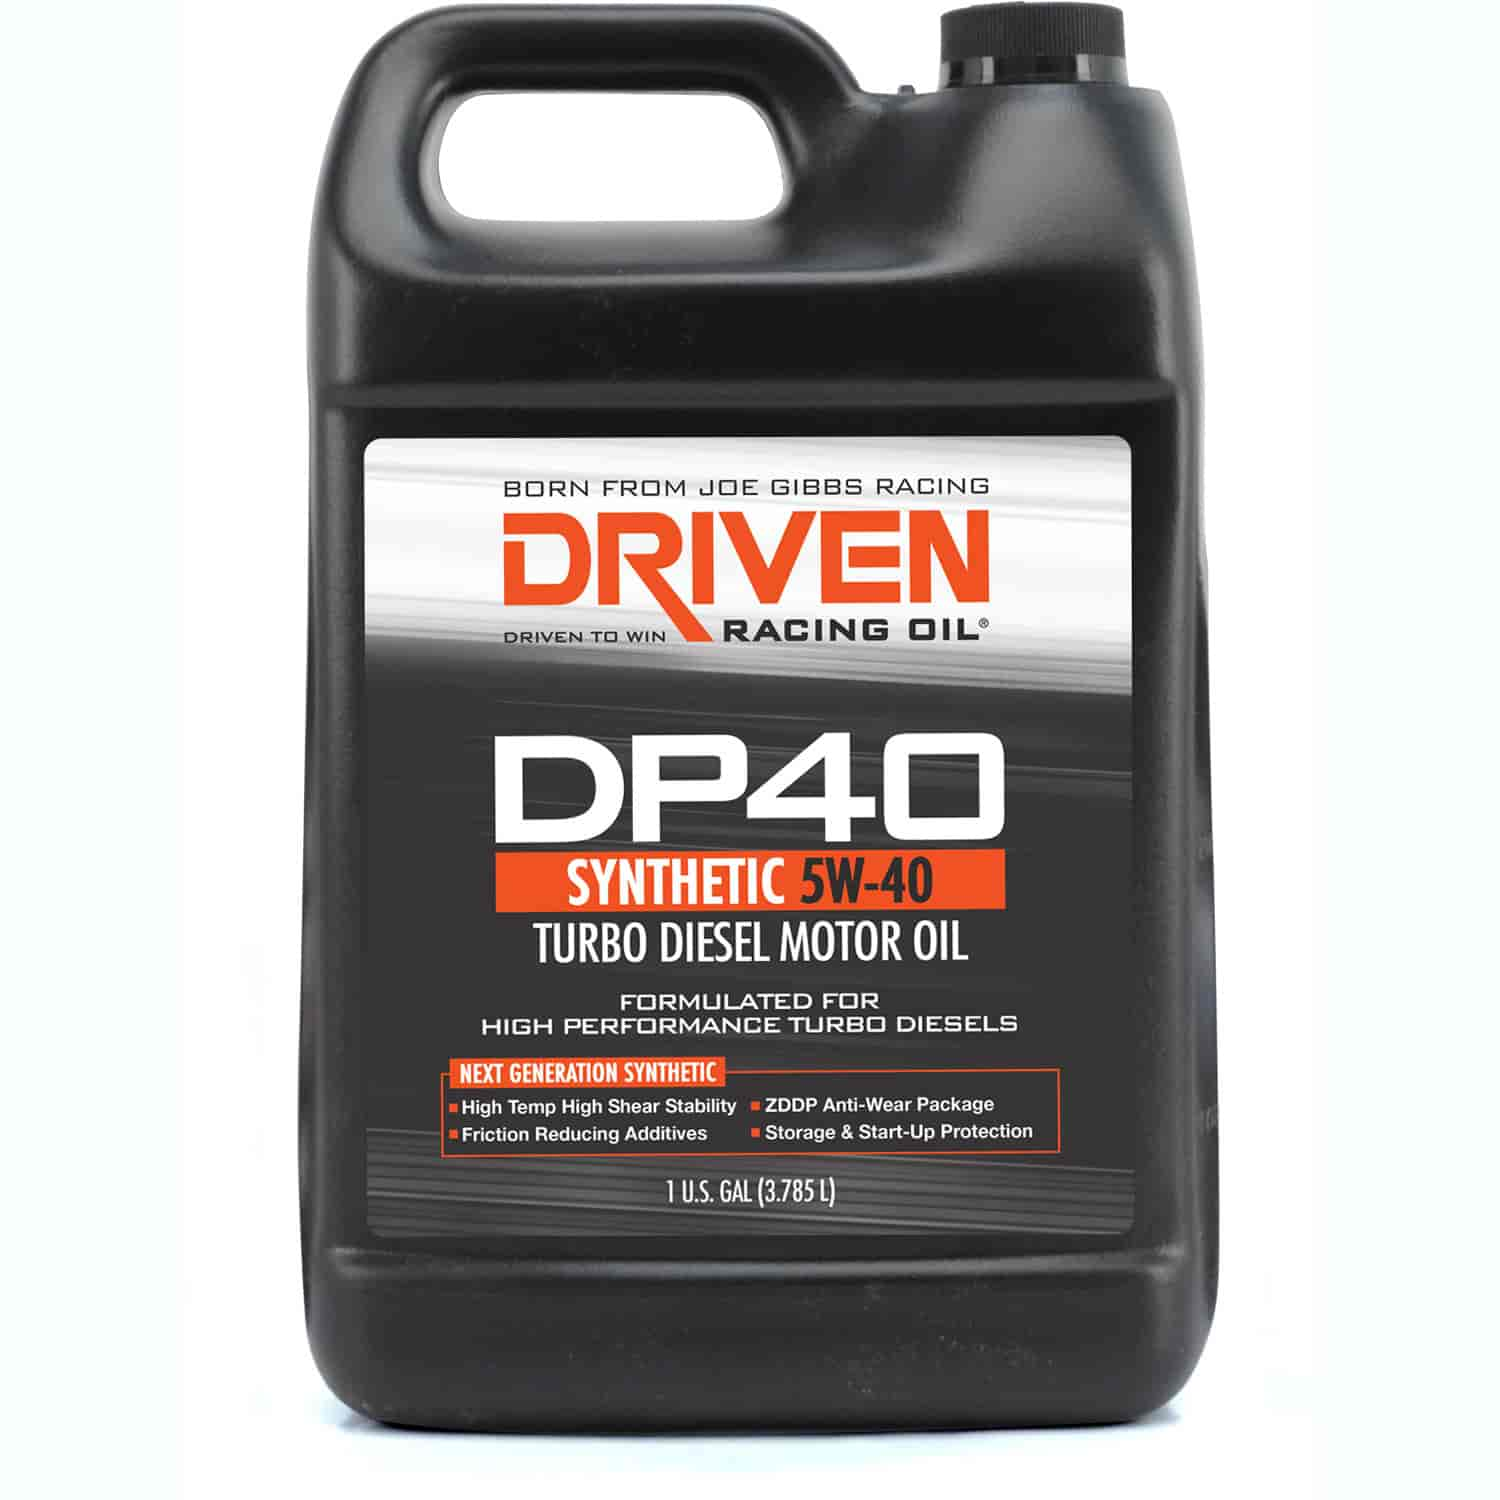 Driven Racing Oil 02508 - Driven Synthetic Performance Diesel Oil